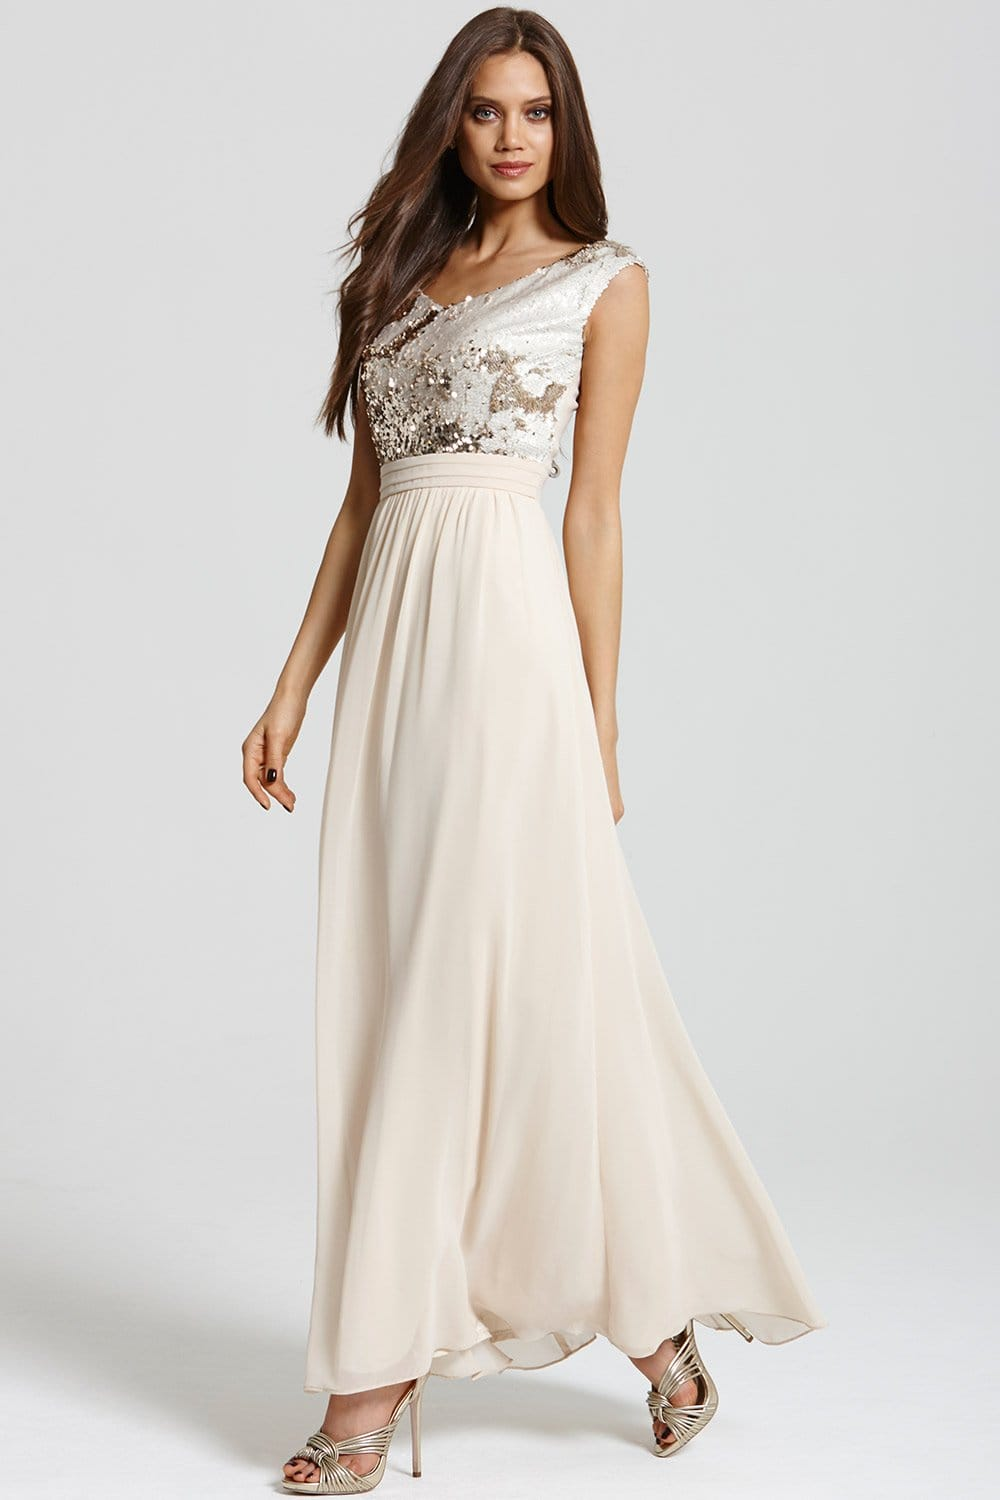 Heavily Embellished Cream And Gold Maxi